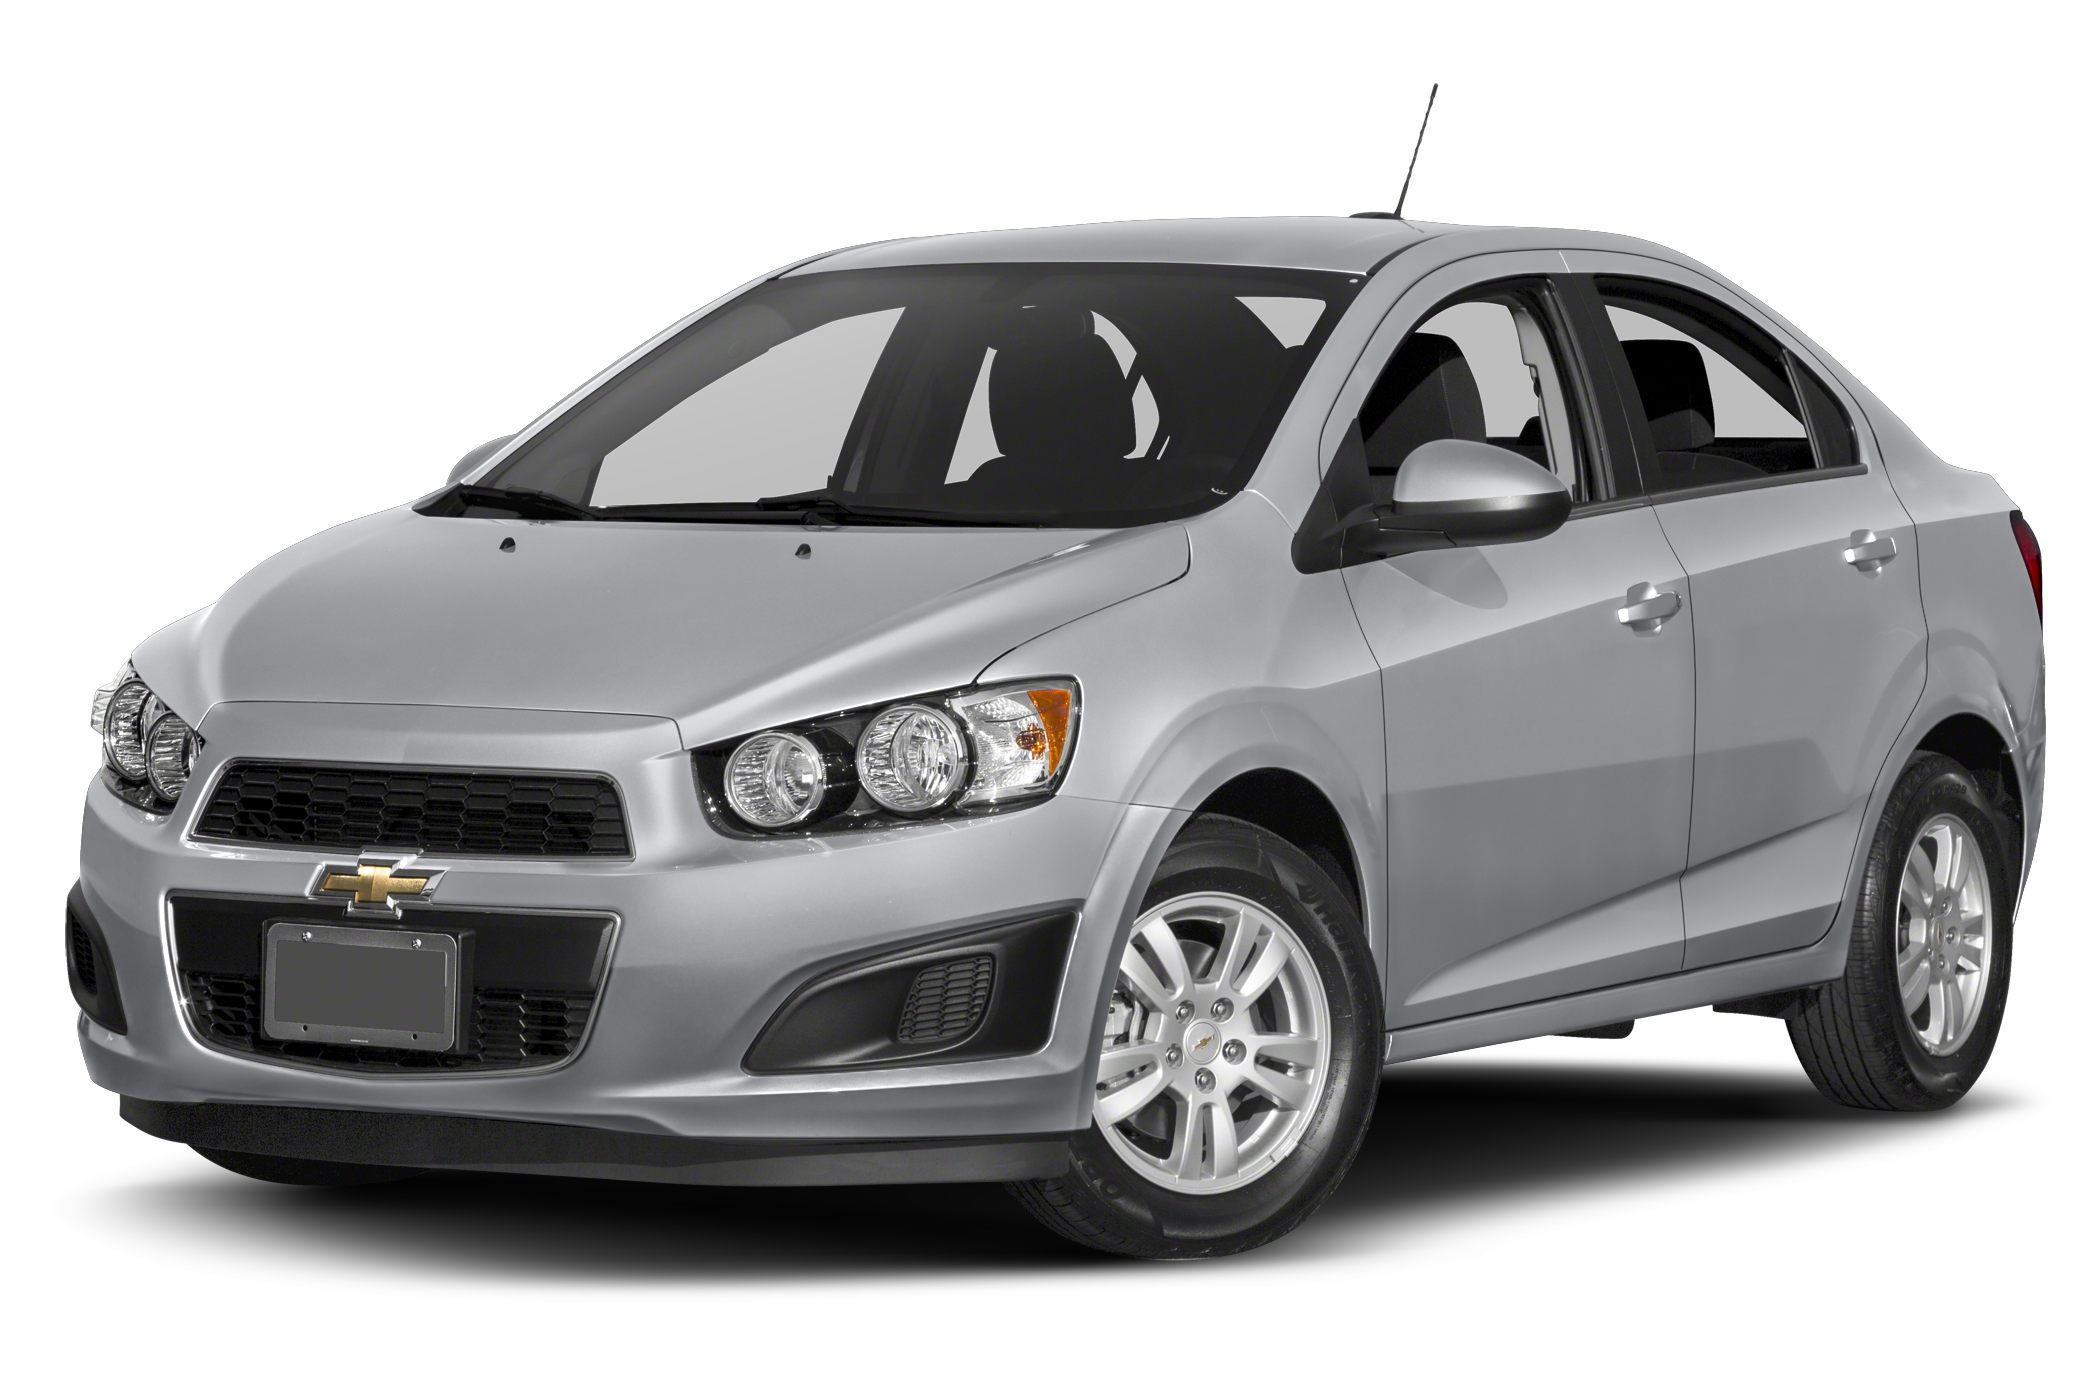 2017 chevrolet sonic new york 2016 photo gallery autoblog. Black Bedroom Furniture Sets. Home Design Ideas